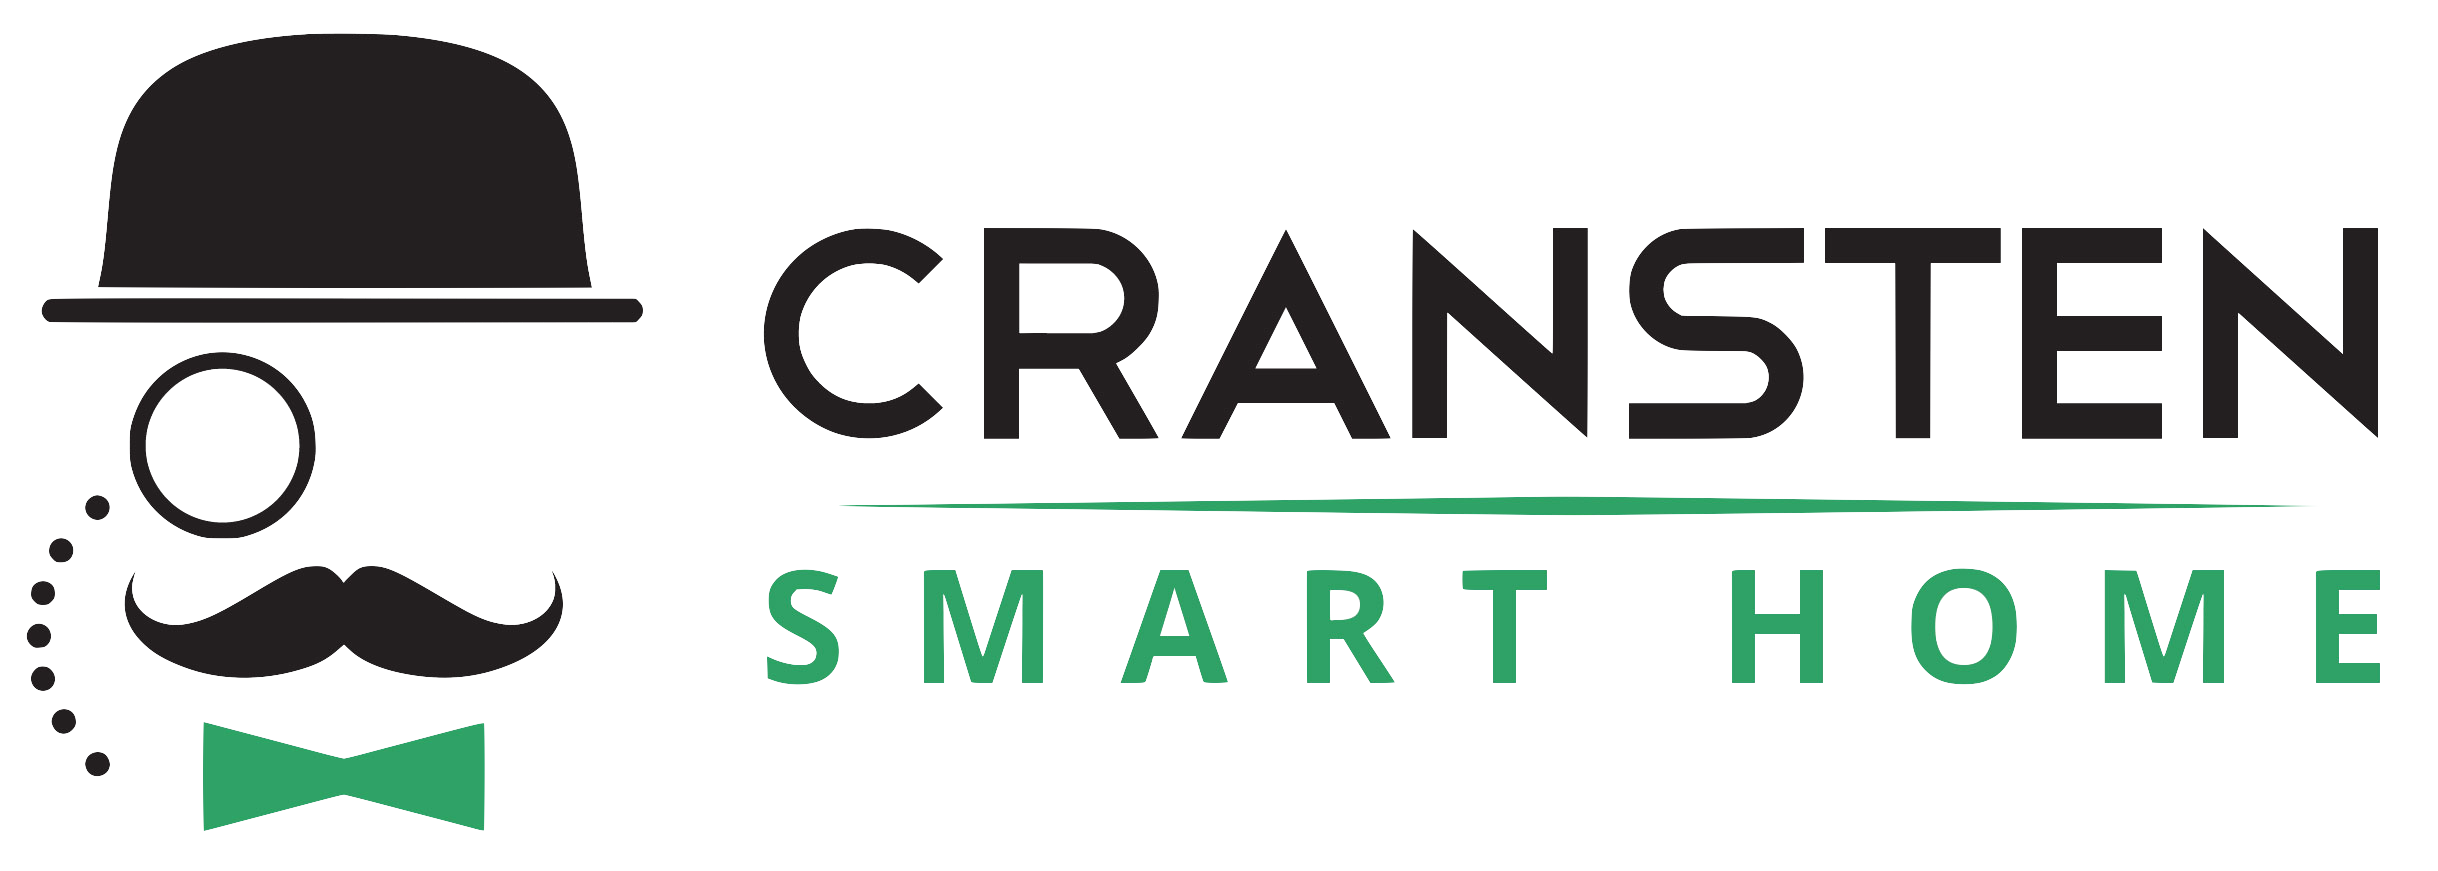 Cransten Smart Home logo